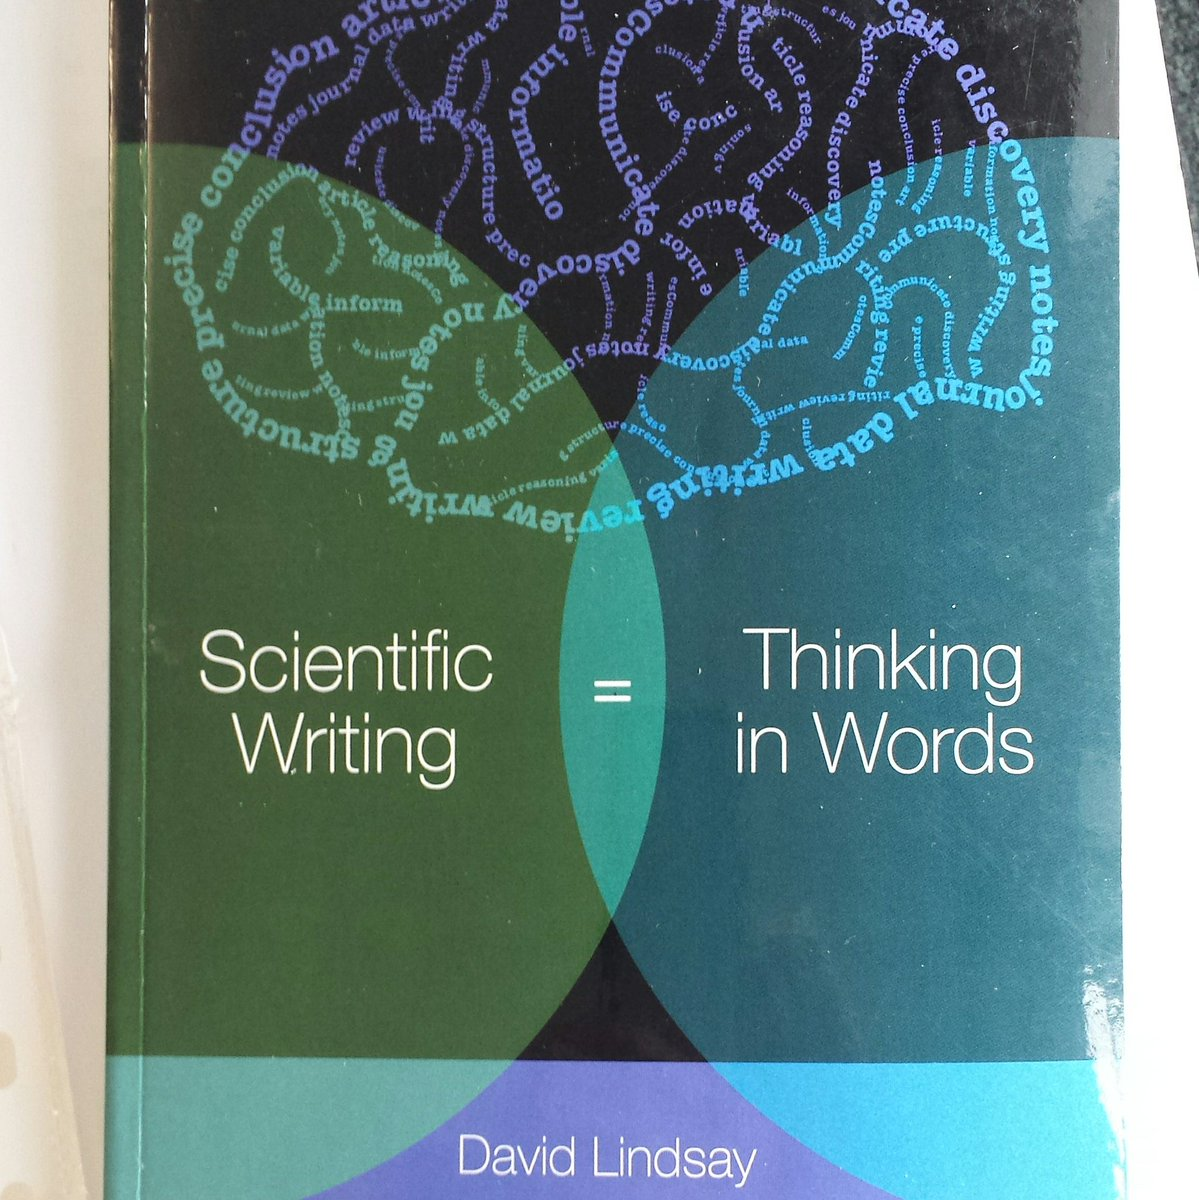 This is another book I bought from @CSIROPublishing. Got it a while back but delved into it yesterday in search of inspiration. A good help to fine tune my discussion for the next manuscript. #scientificwriting <br>http://pic.twitter.com/I6LNdXOVY7